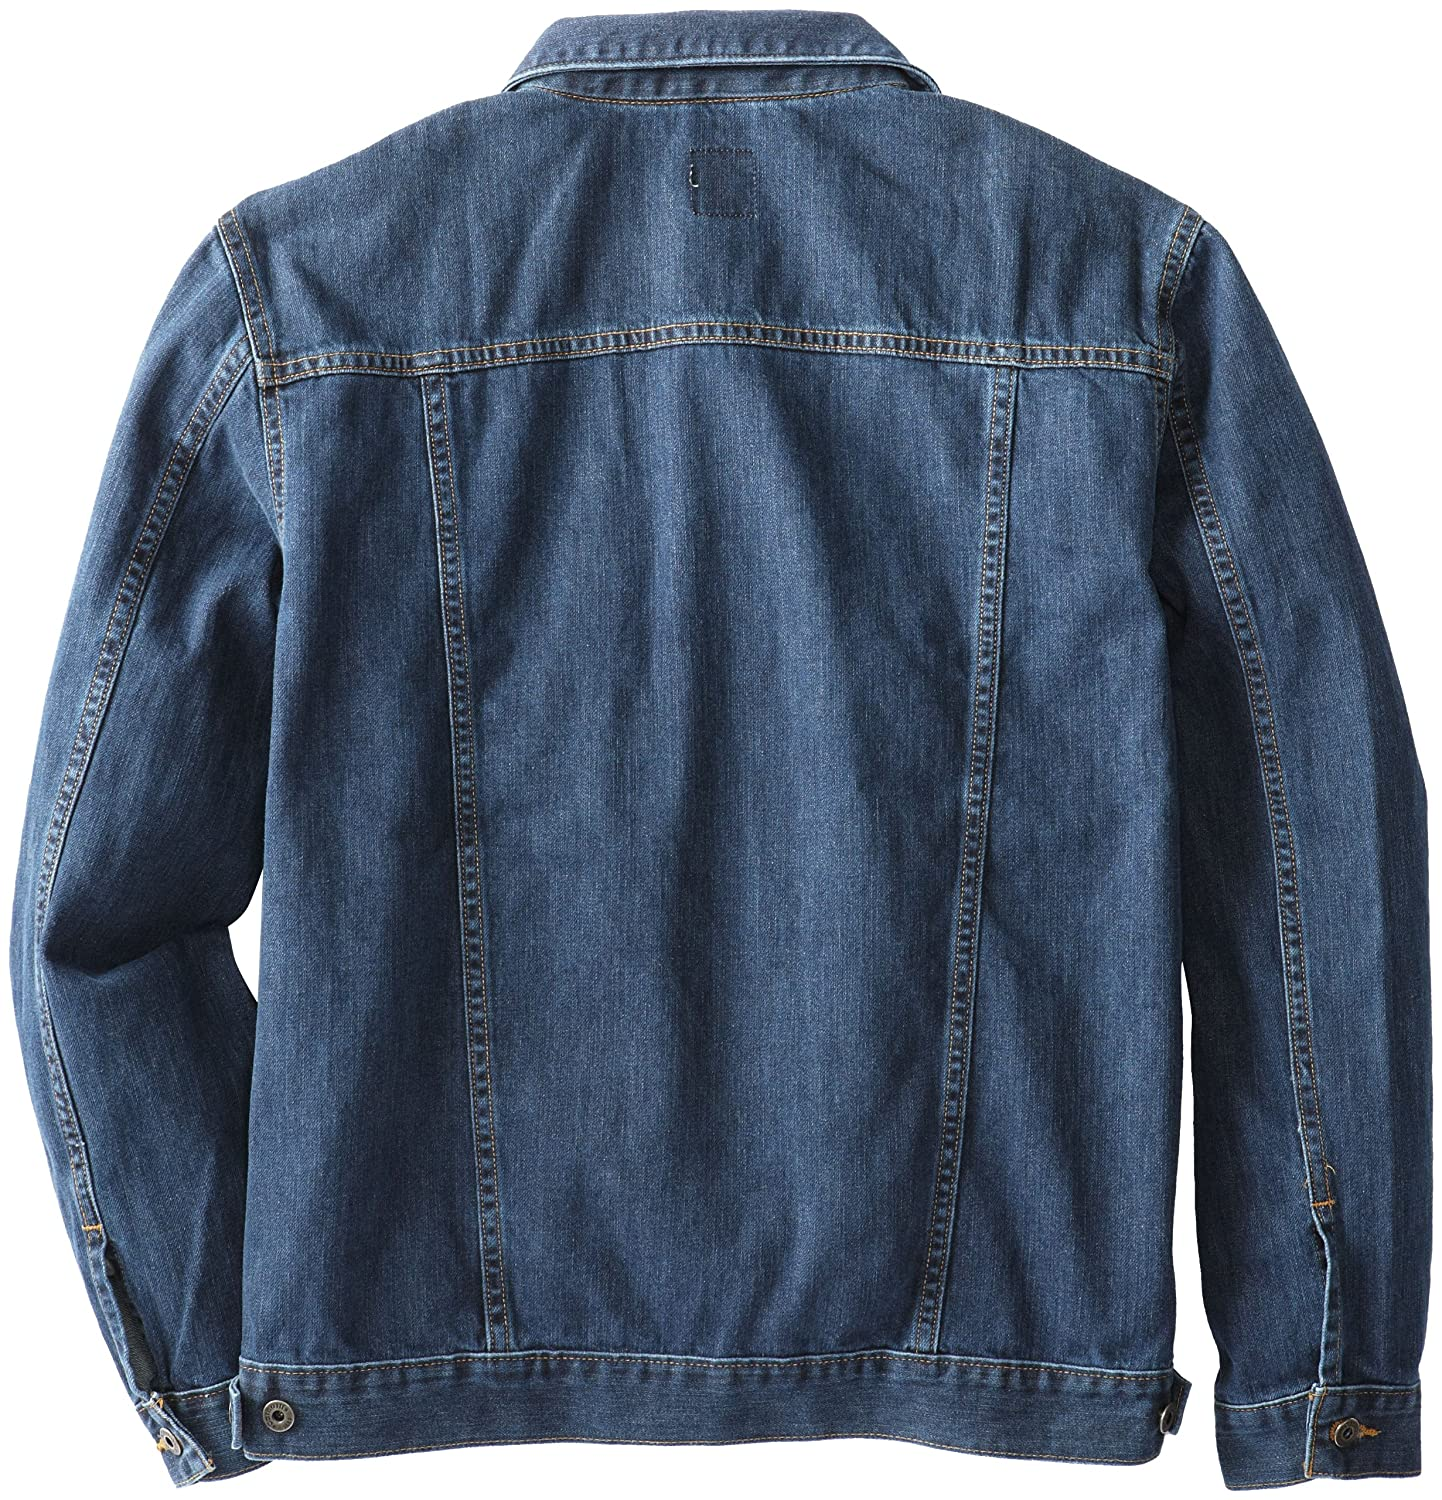 Carhartt Men's Tall Denim Jean Jacket